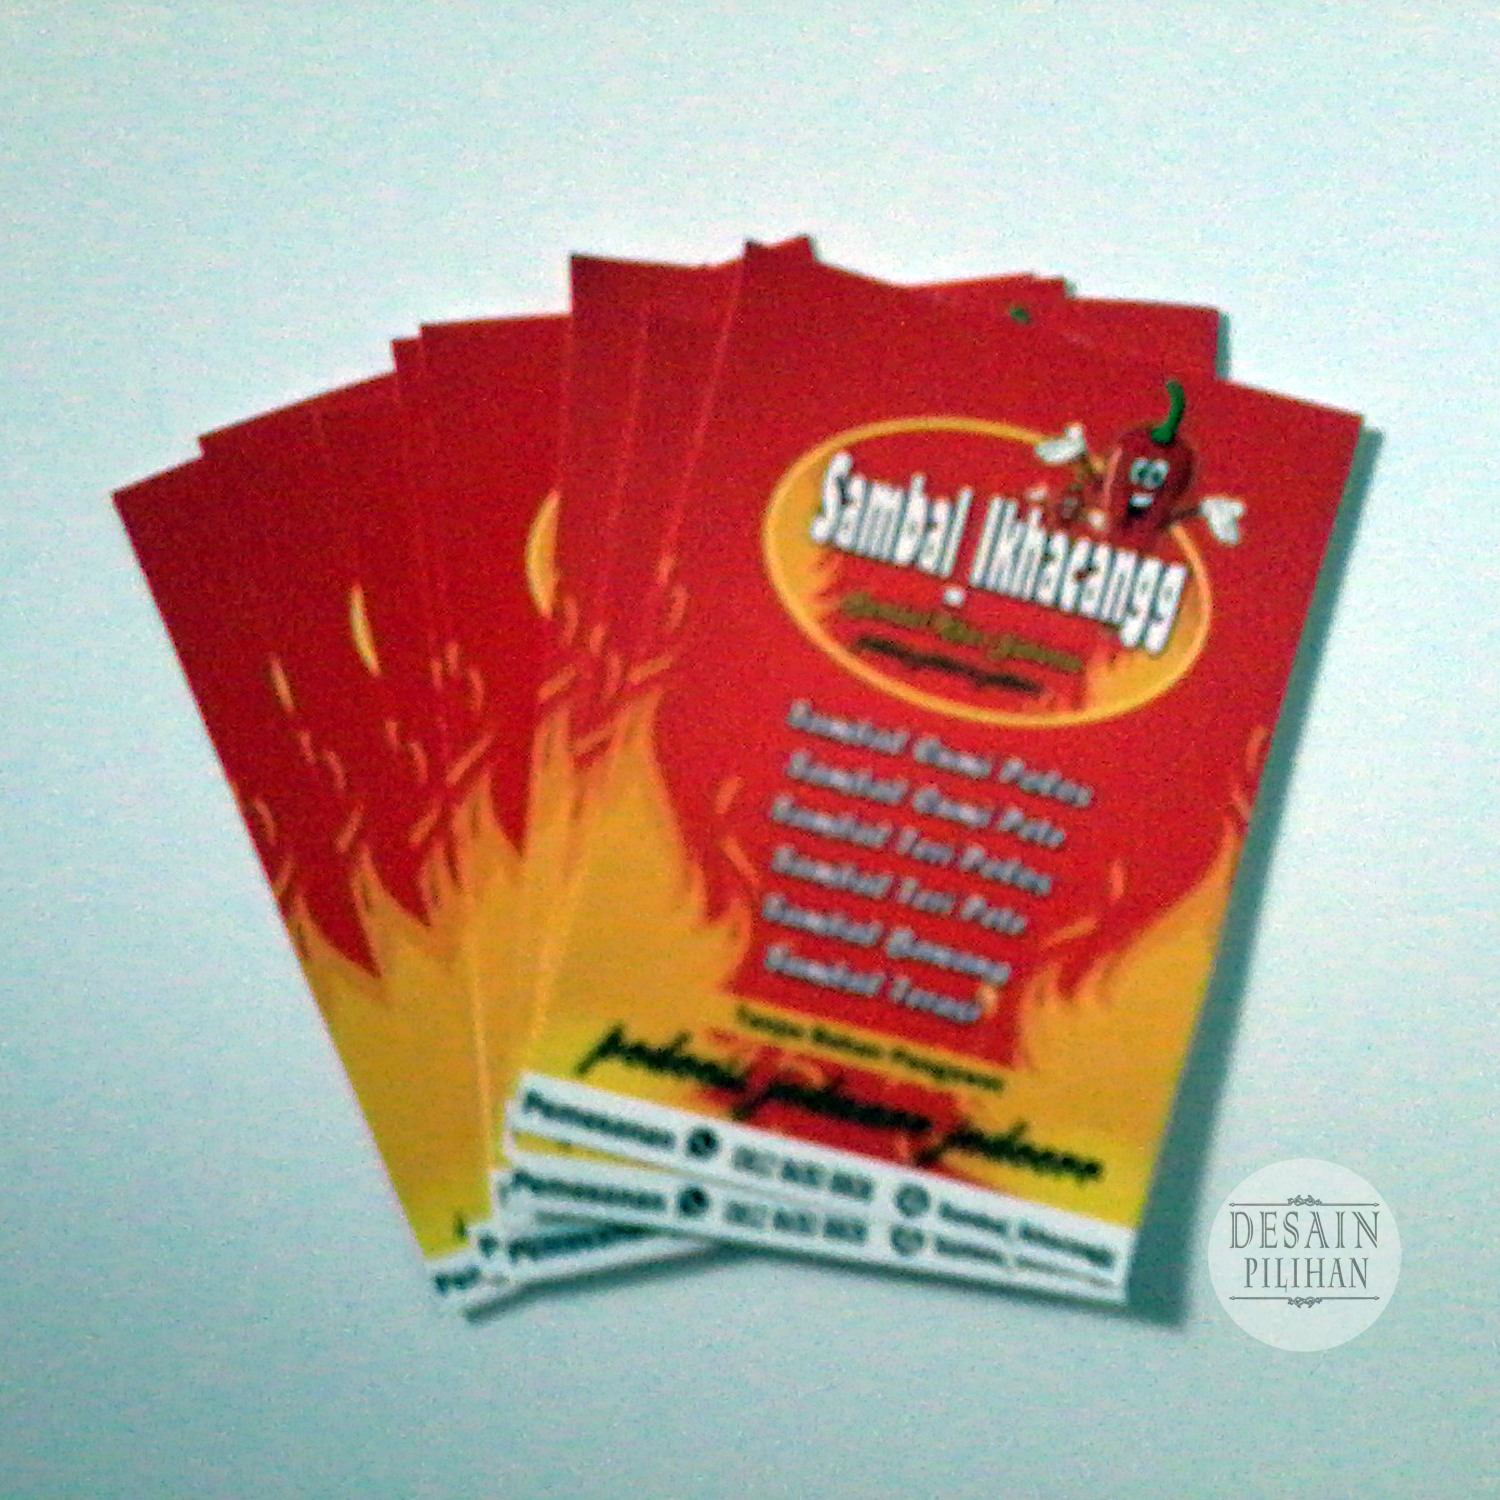 LABEL HANG TAG, LABEL HANG TAG PRODUK MAKANAN SAMBAL IKHACANGG